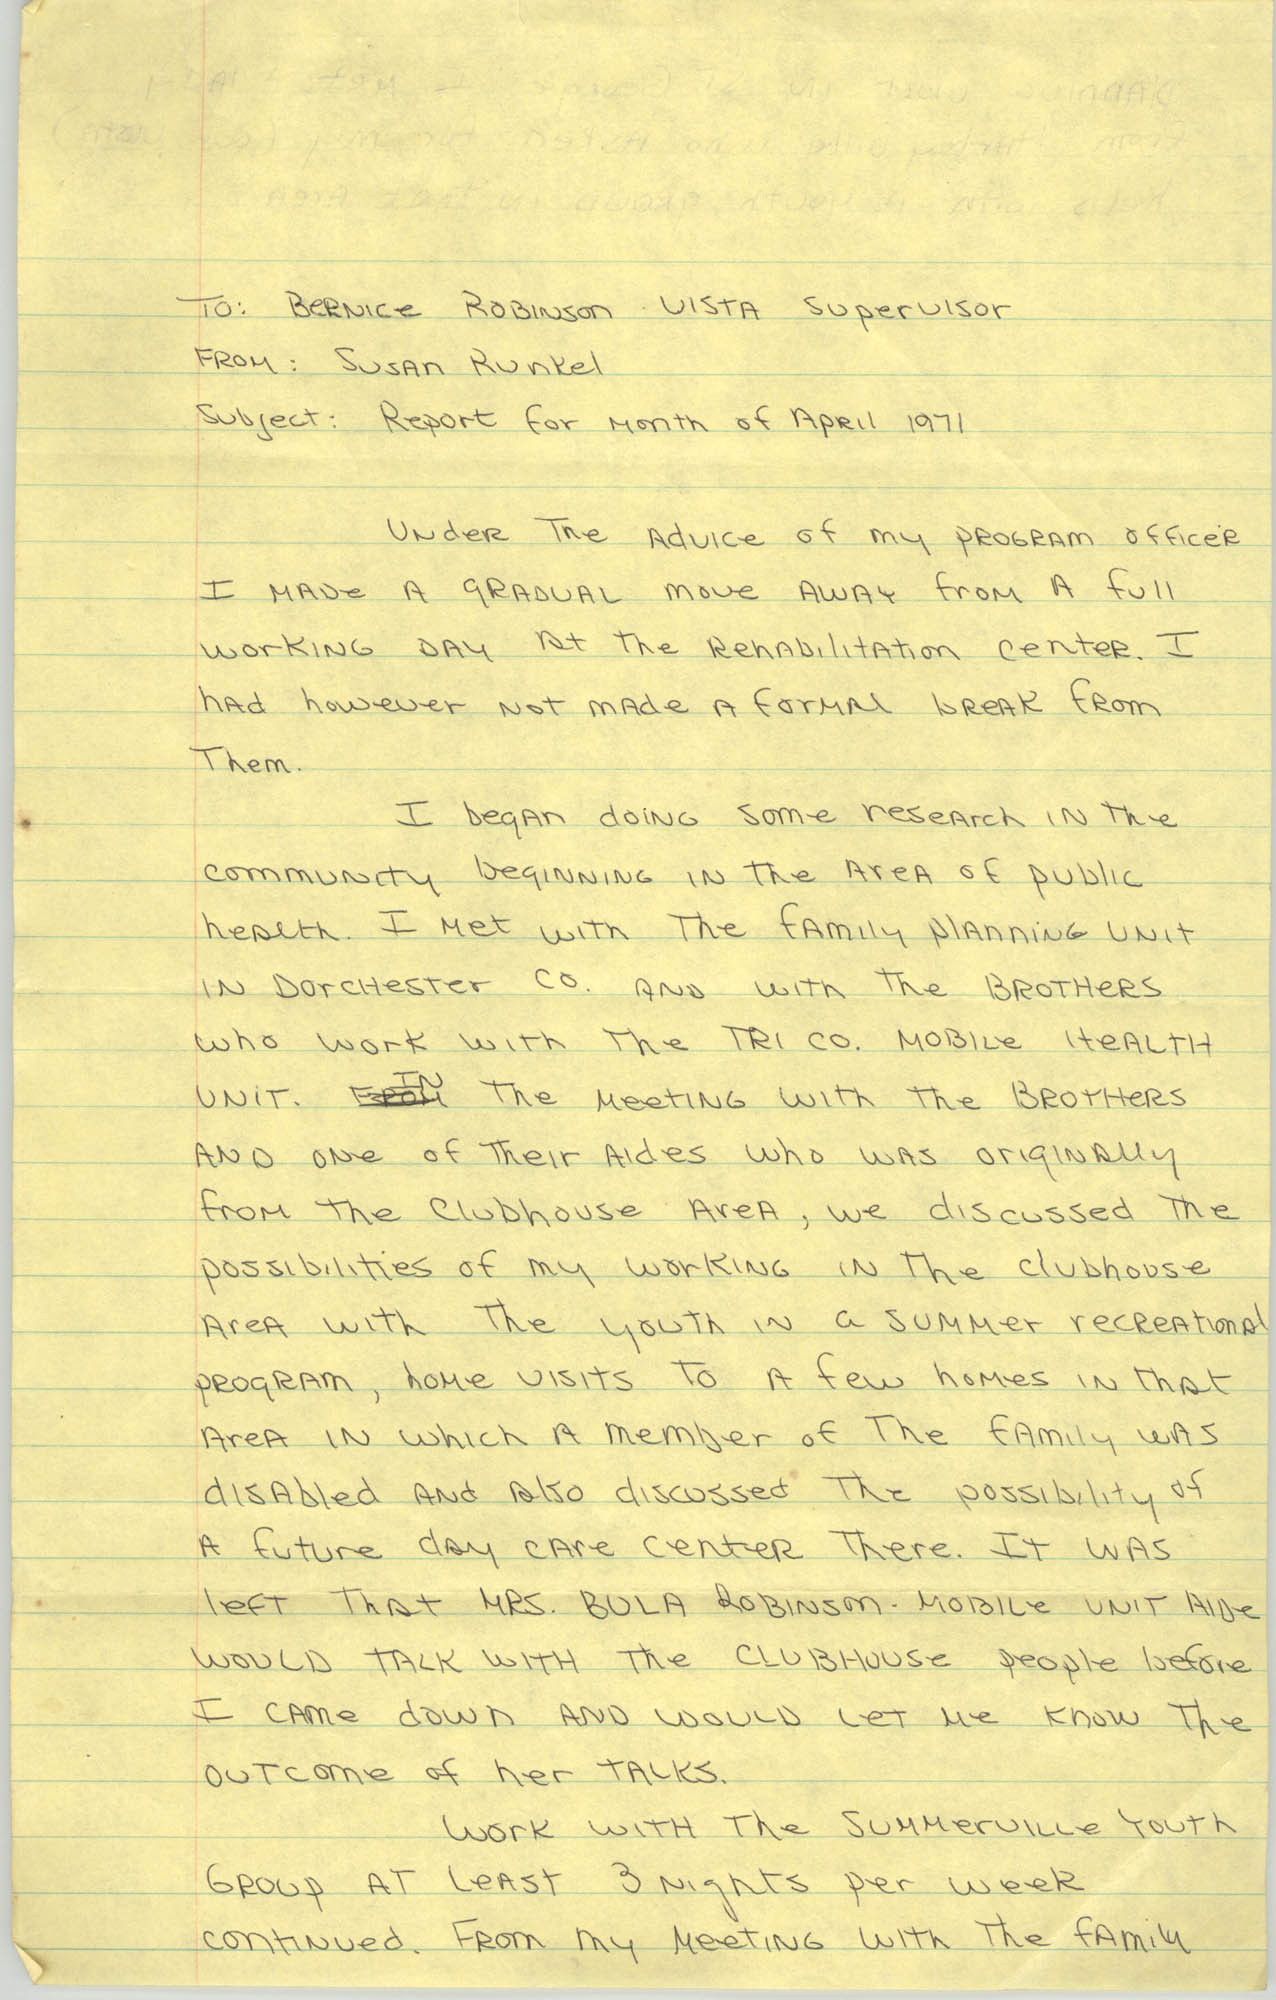 Memorandum from Susan Runkel to Bernice Robinson, April 1971